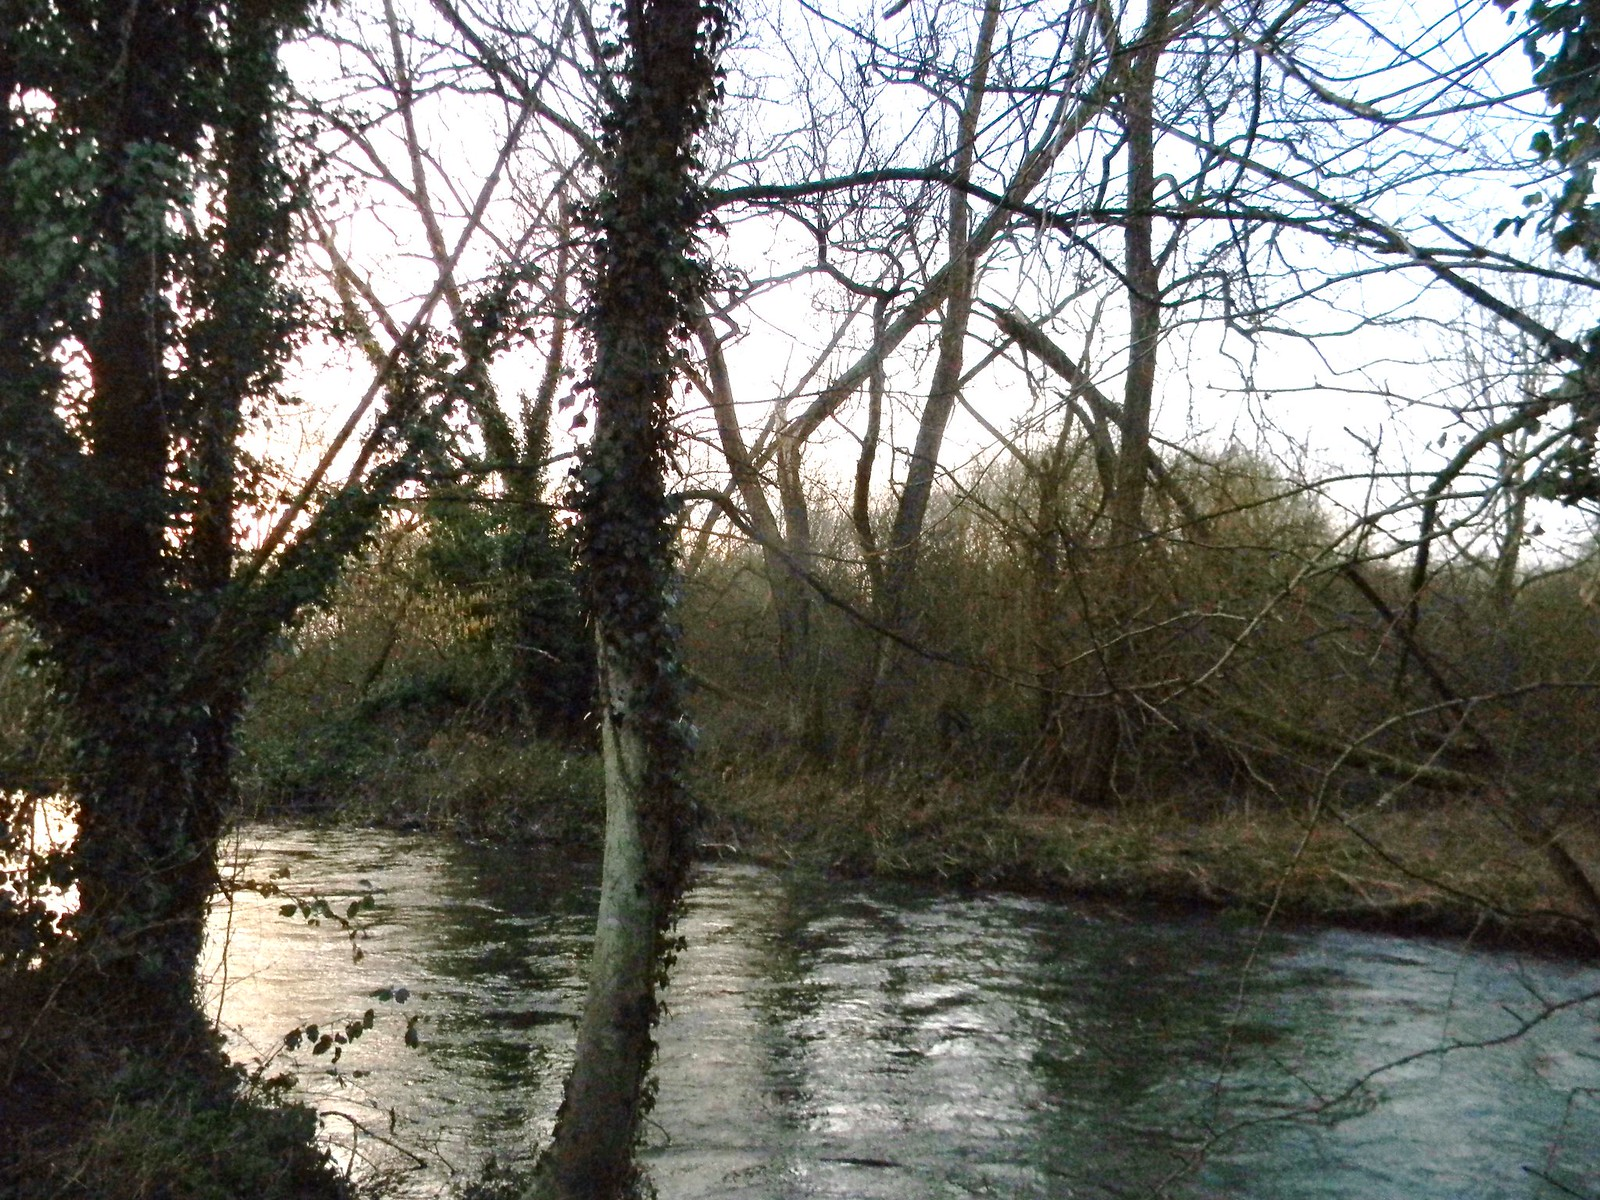 The Wey Guildford to Farnham